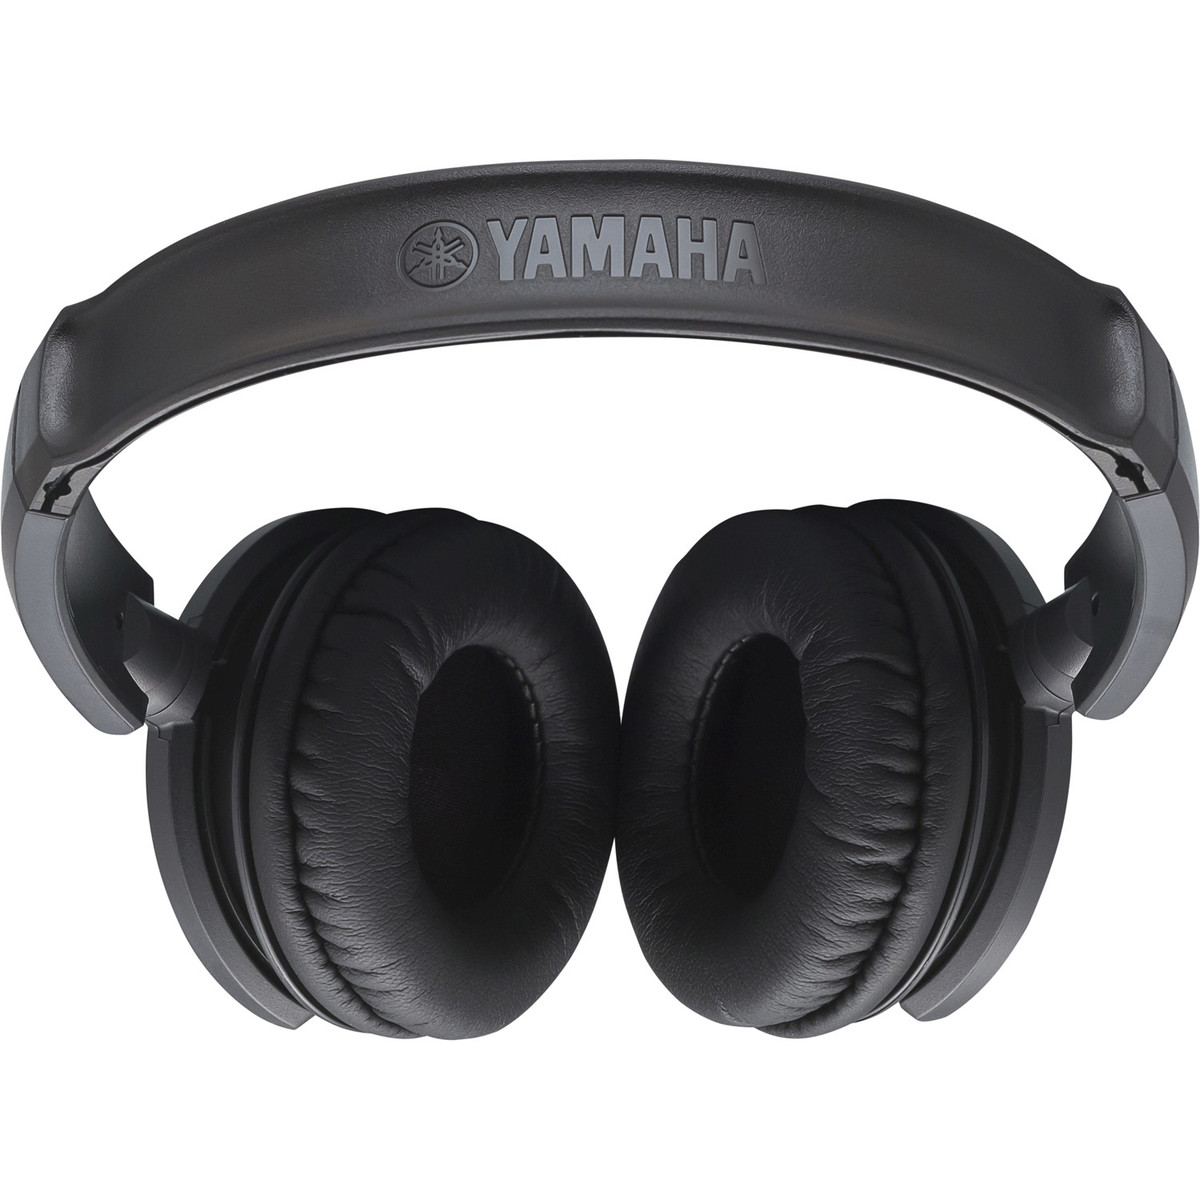 Yamaha earbuds - earbuds under 100 dollars